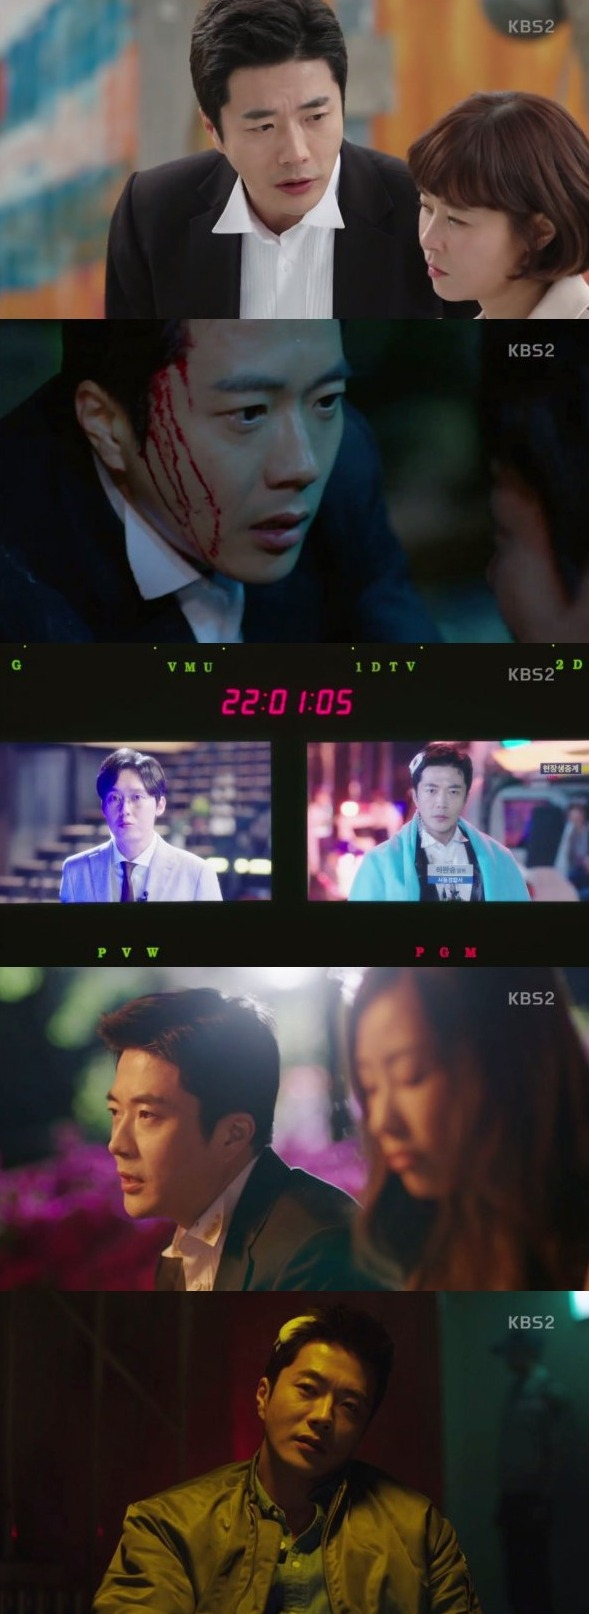 [Spoiler] Added episode 8 captures for the Korean drama 'Mystery Queen'